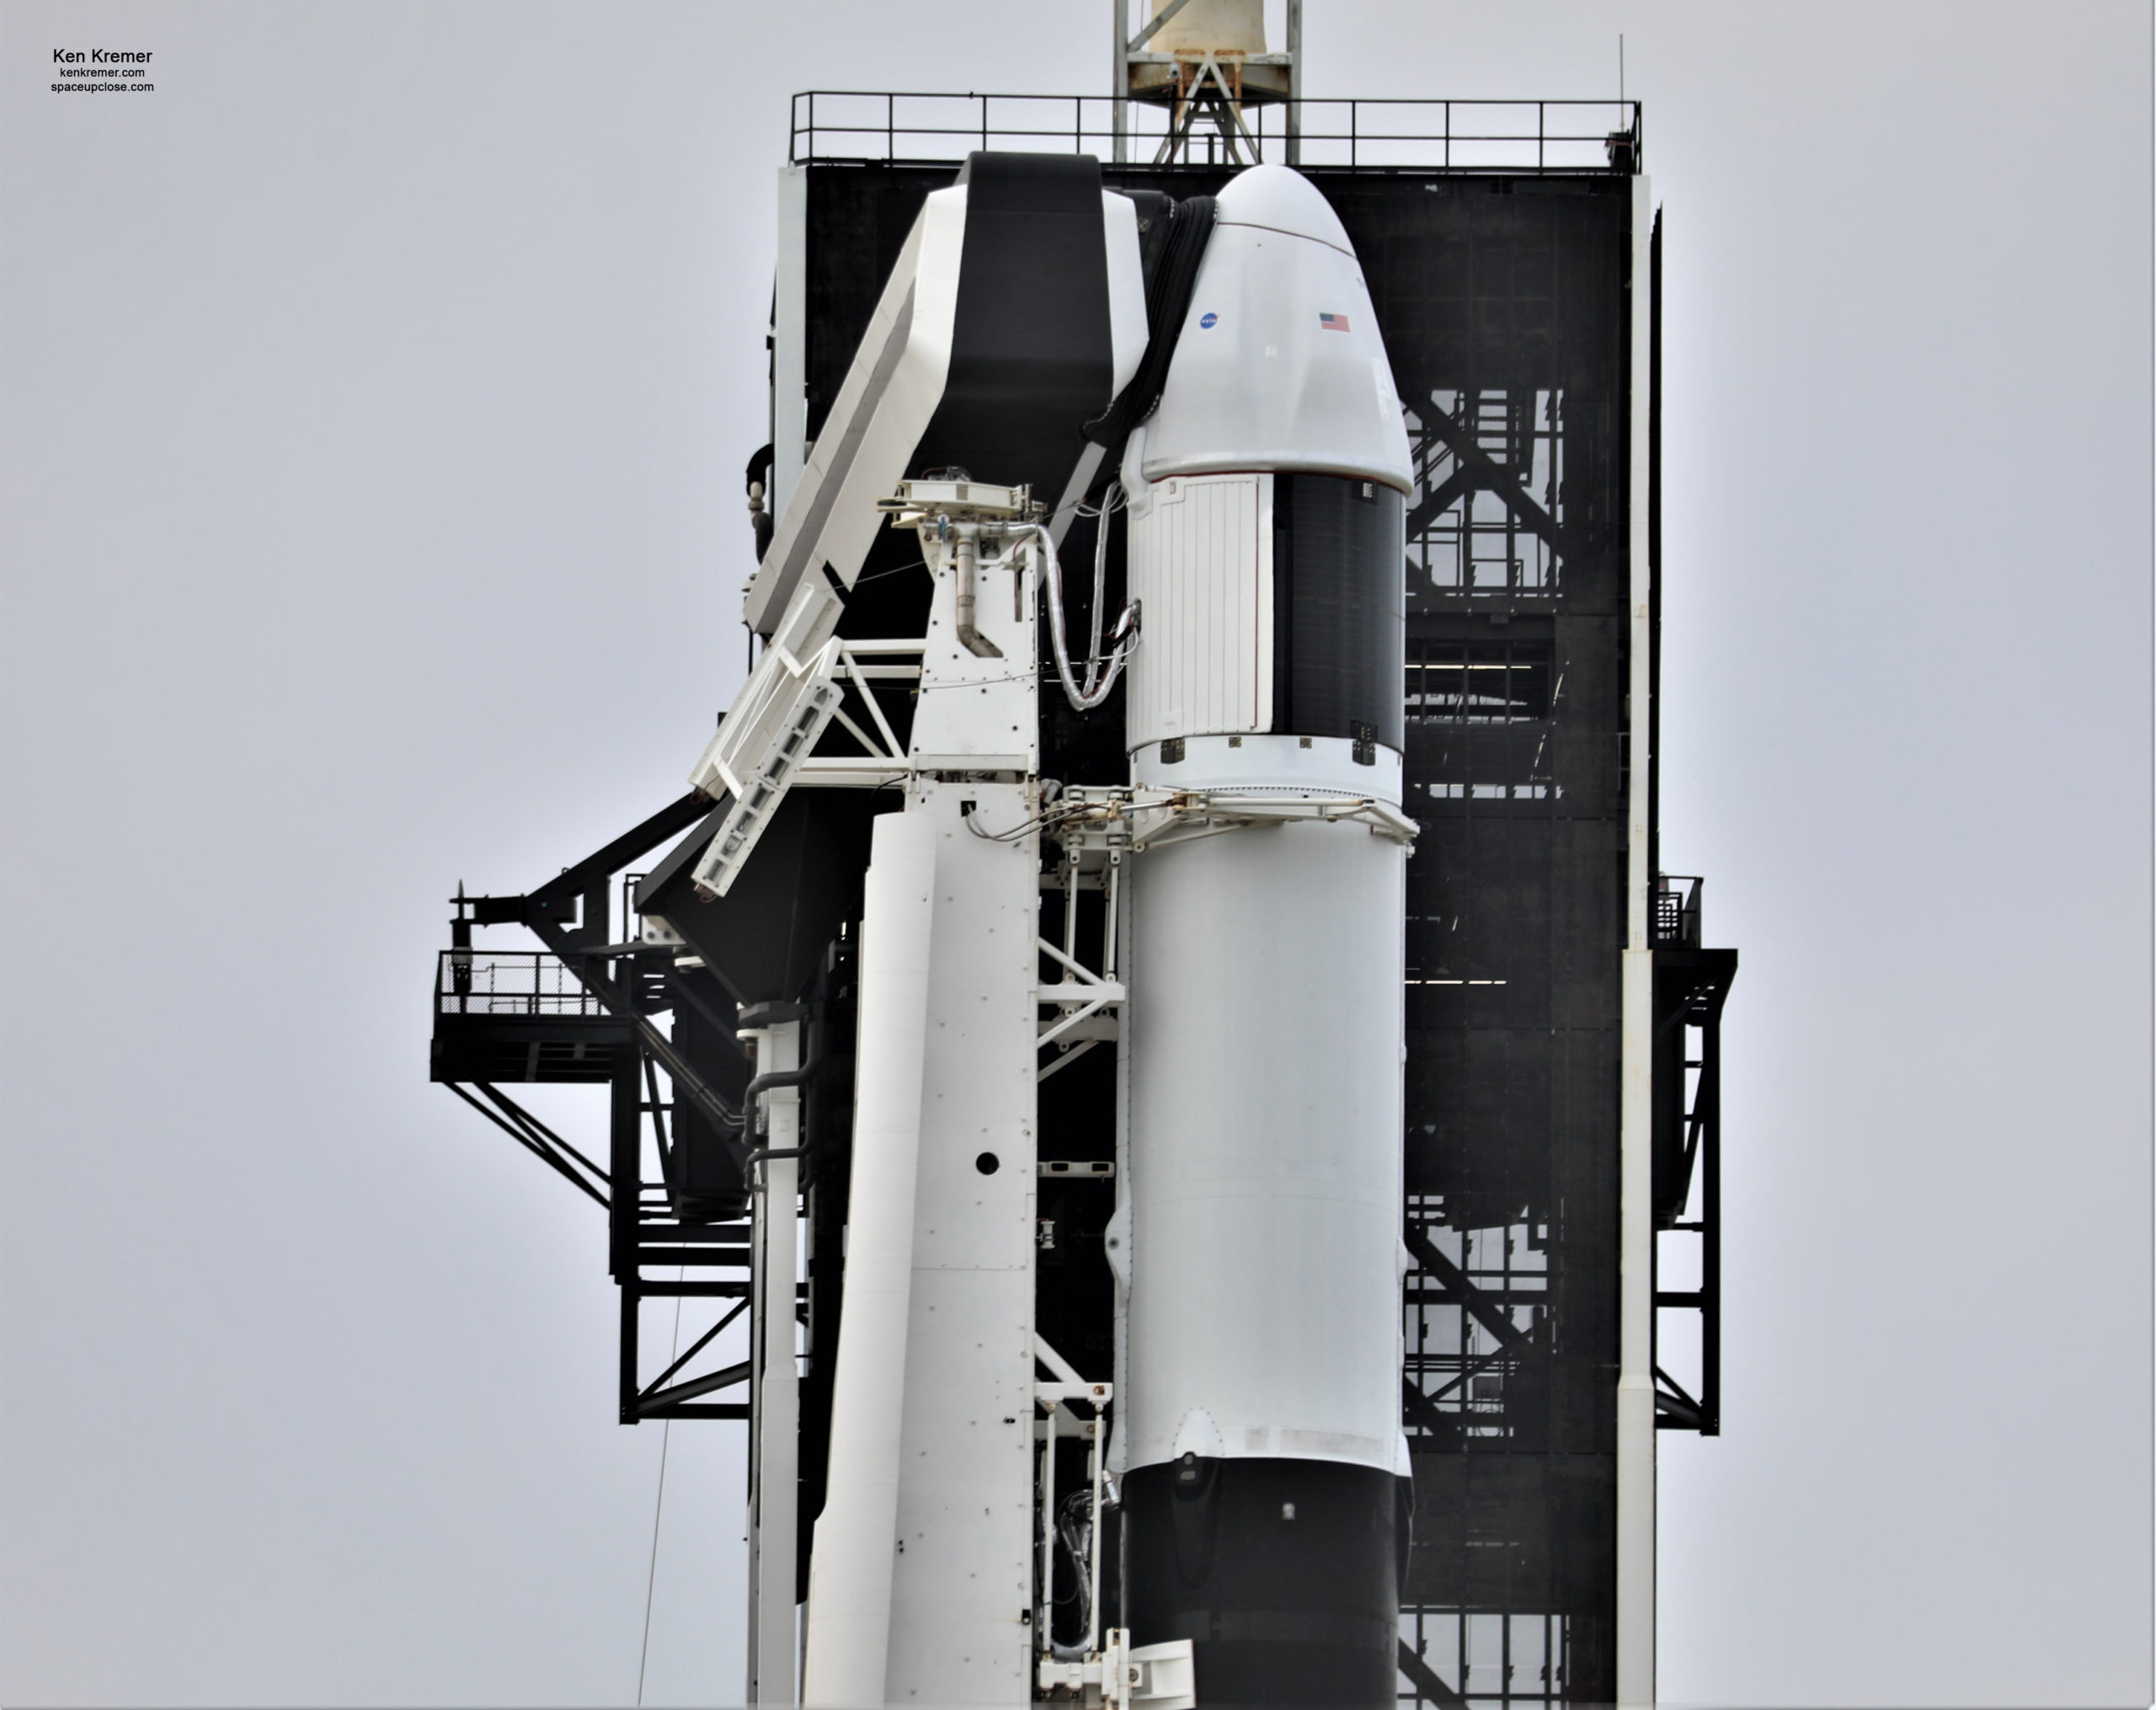 1st Upgraded SpaceX Cargo Dragon Set for Falcon 9 Blastoff to ISS Saturday Dec. 5: Watch Live/Photos